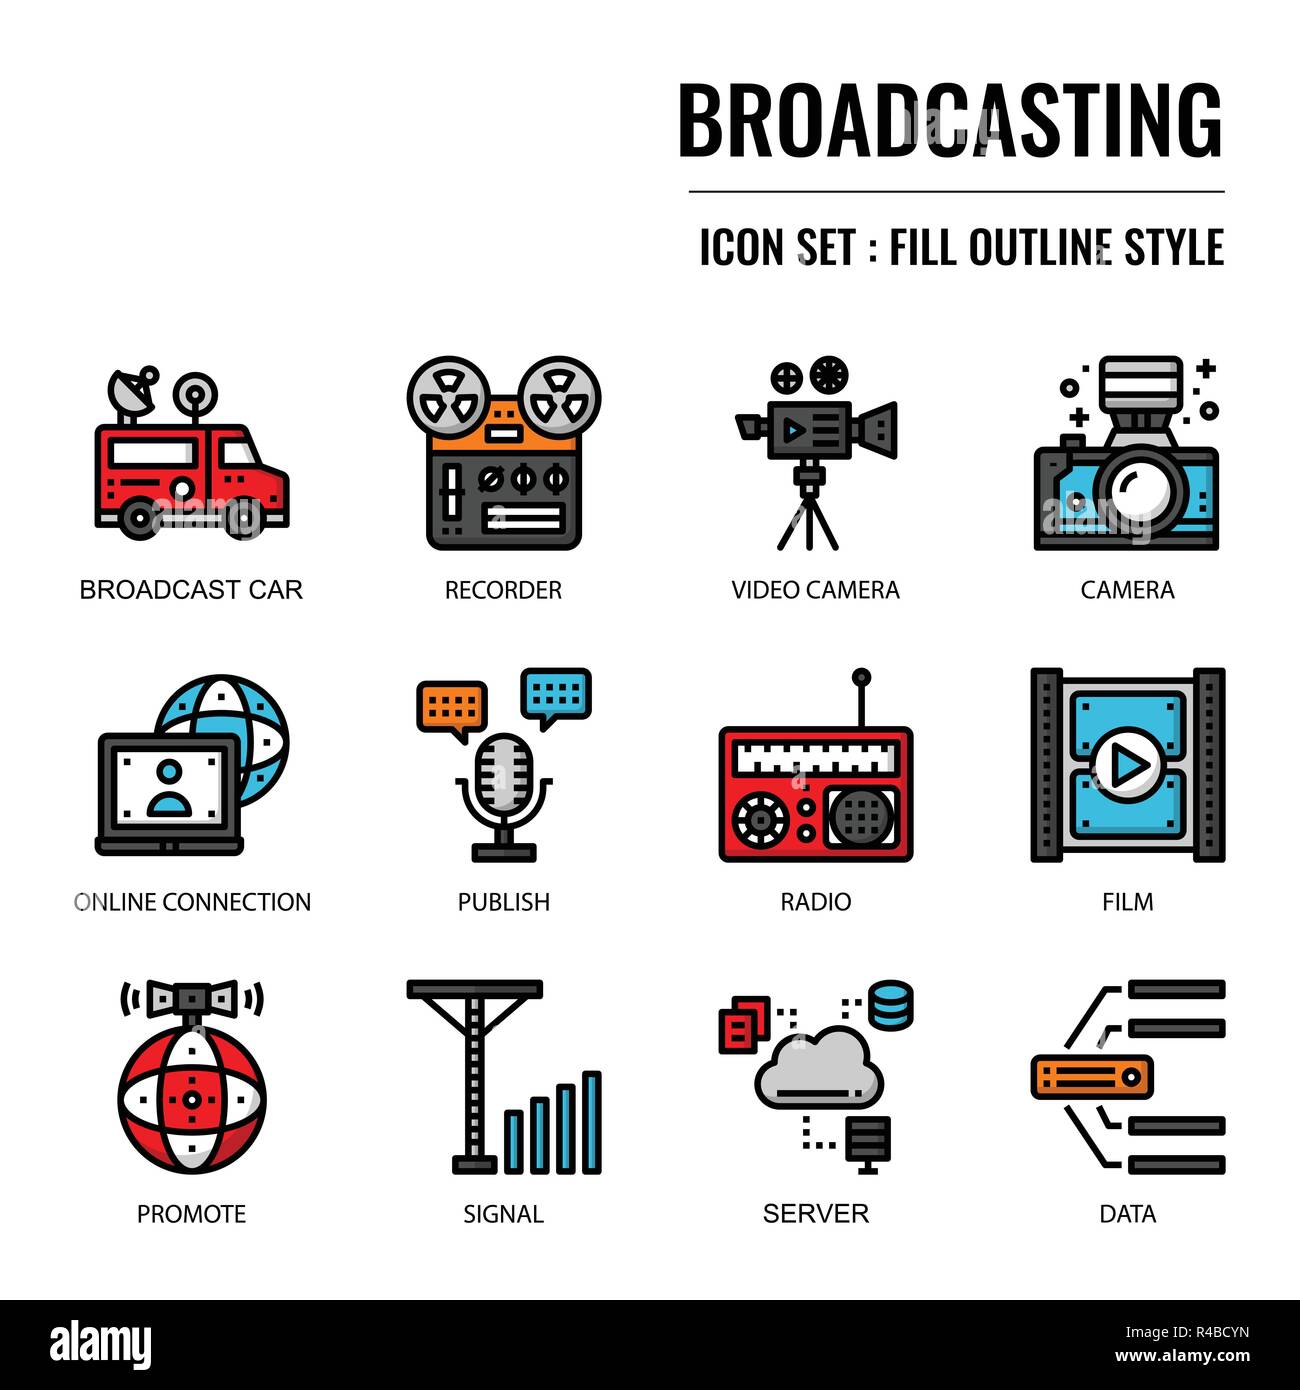 Broadcasting, pixel perfect icon, isolated on white background - Stock Image